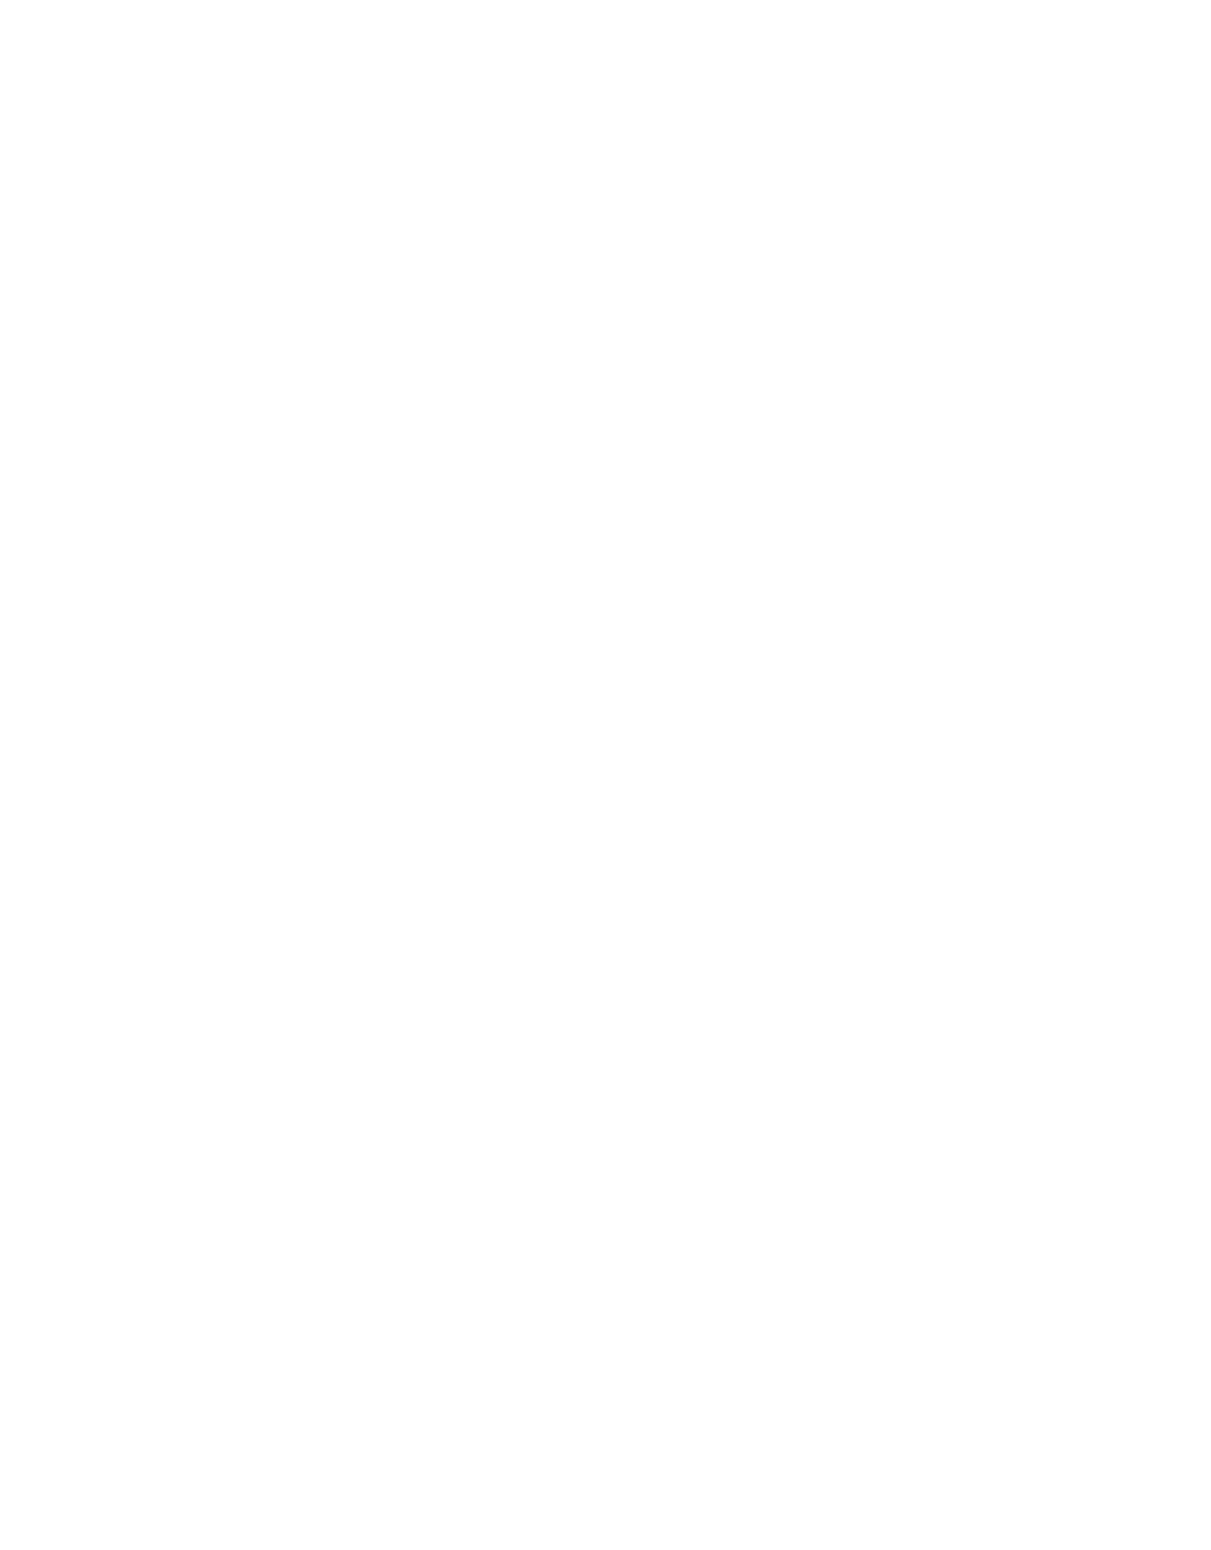 Natural Mystic Sanctuary